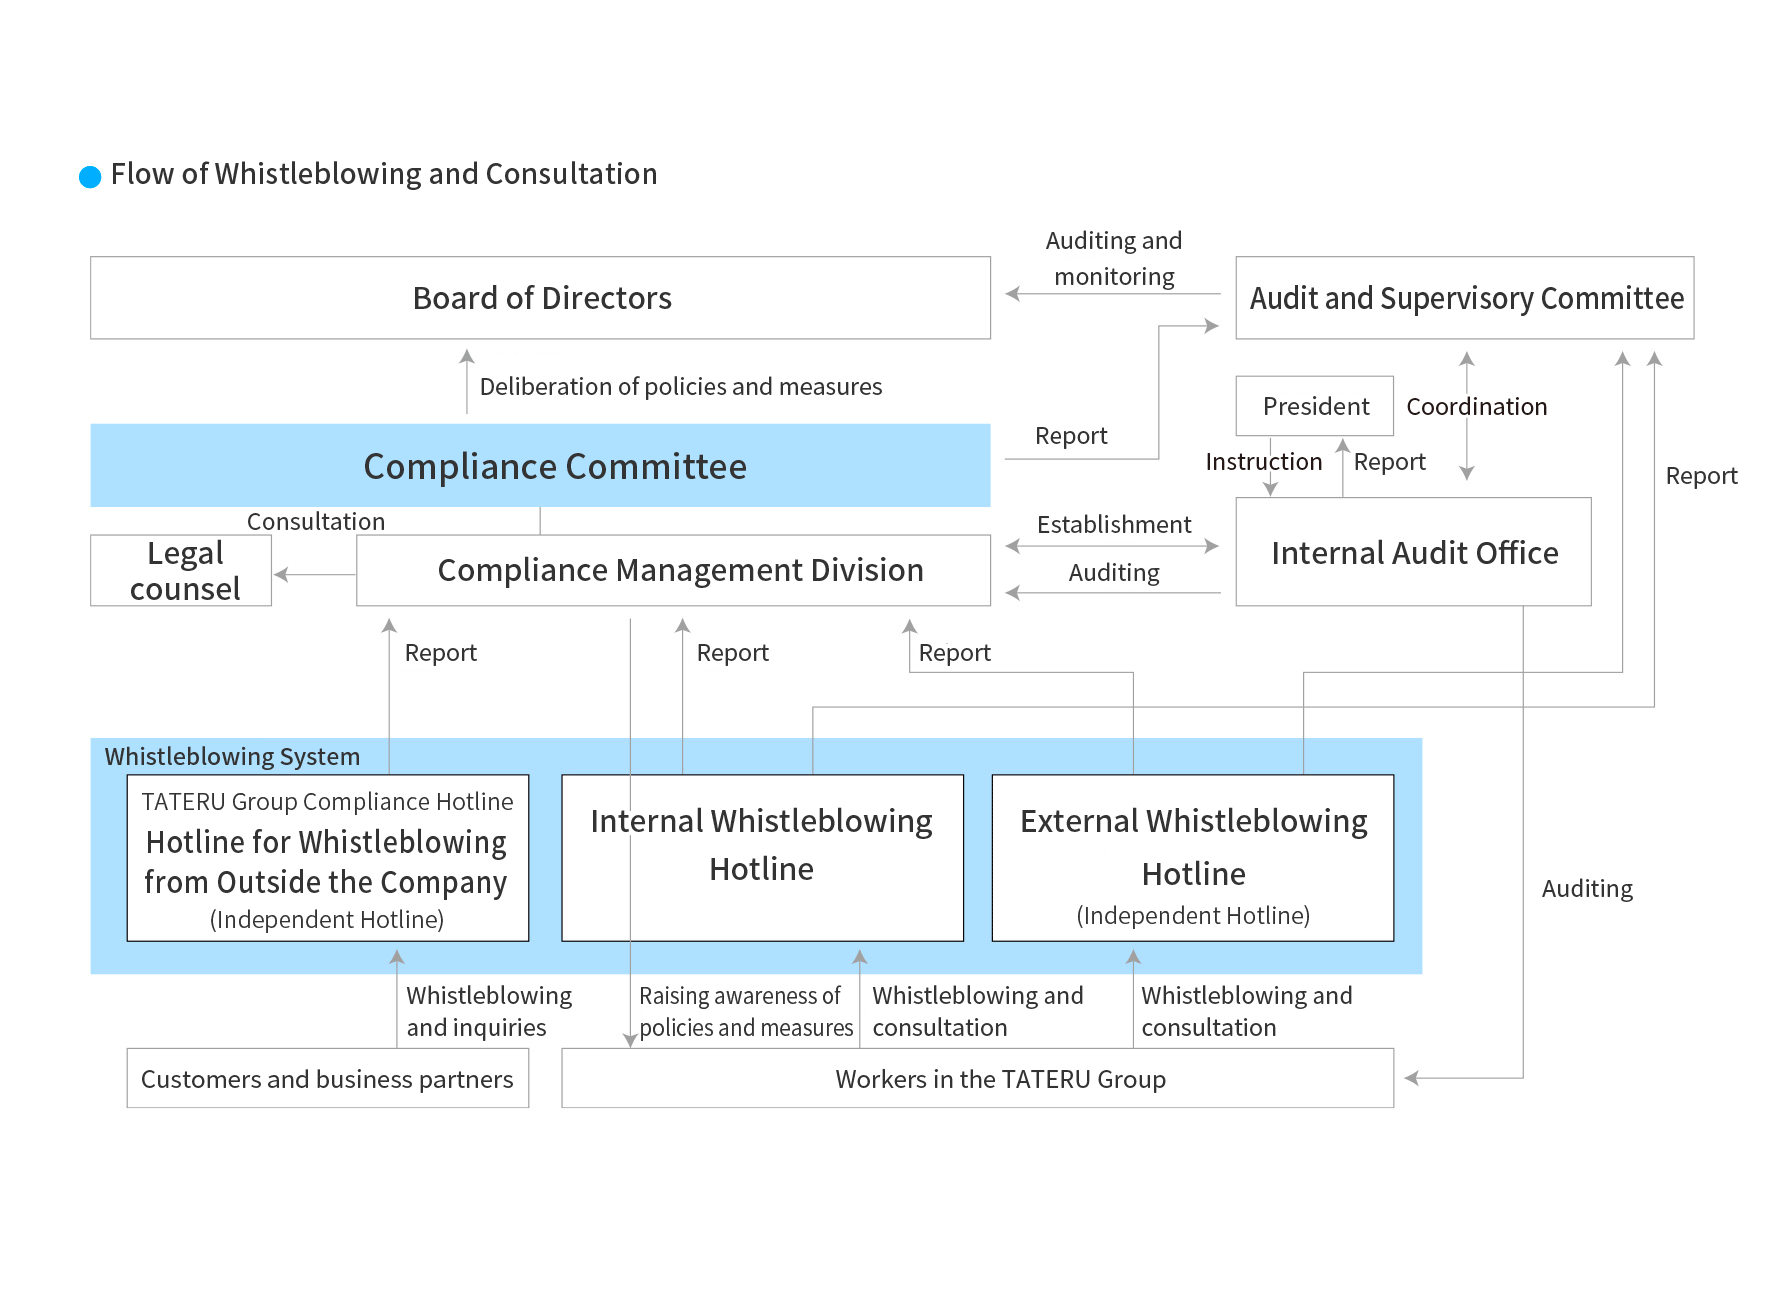 Flow of Whistleblowing and Consultation